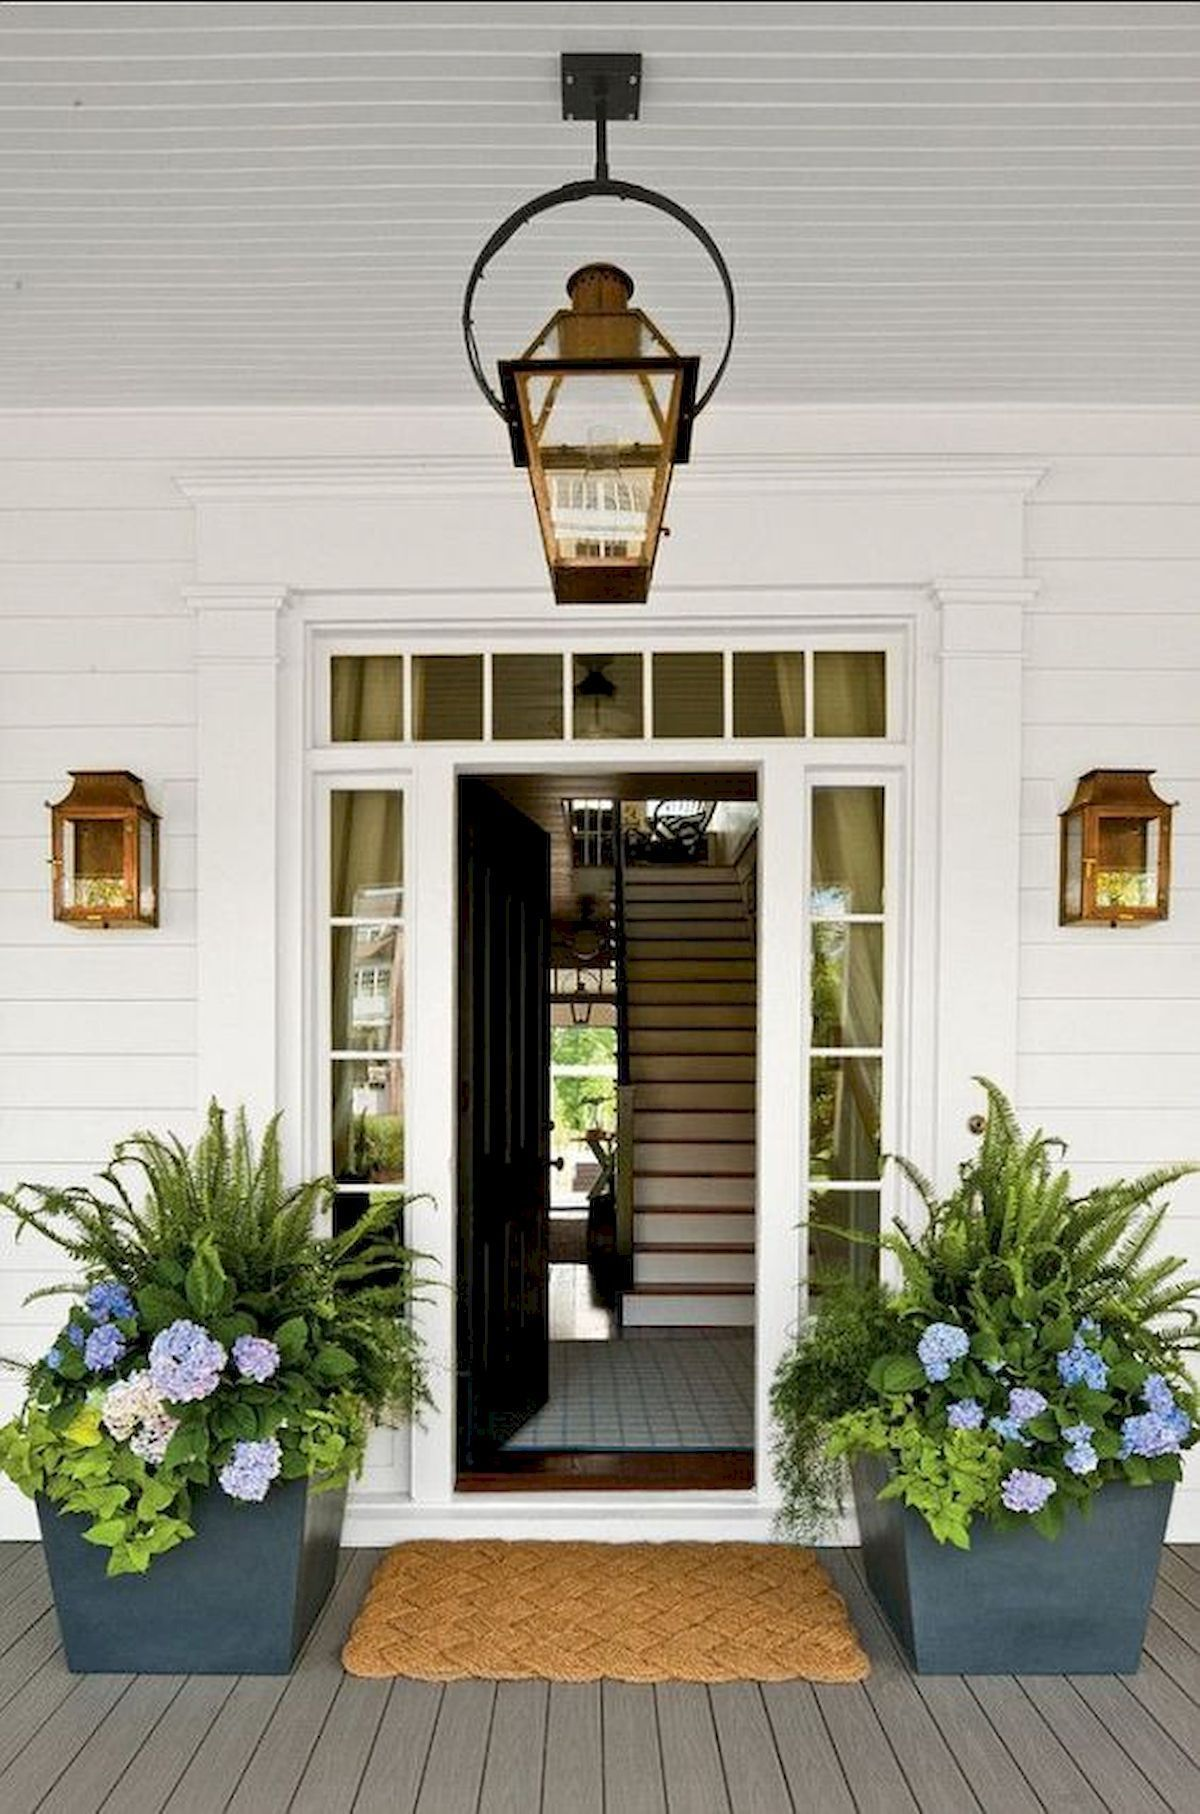 50 Beautiful Spring Decorating Ideas for Front Porch (1) - CoachDecor.com #frontporchideascurbappeal